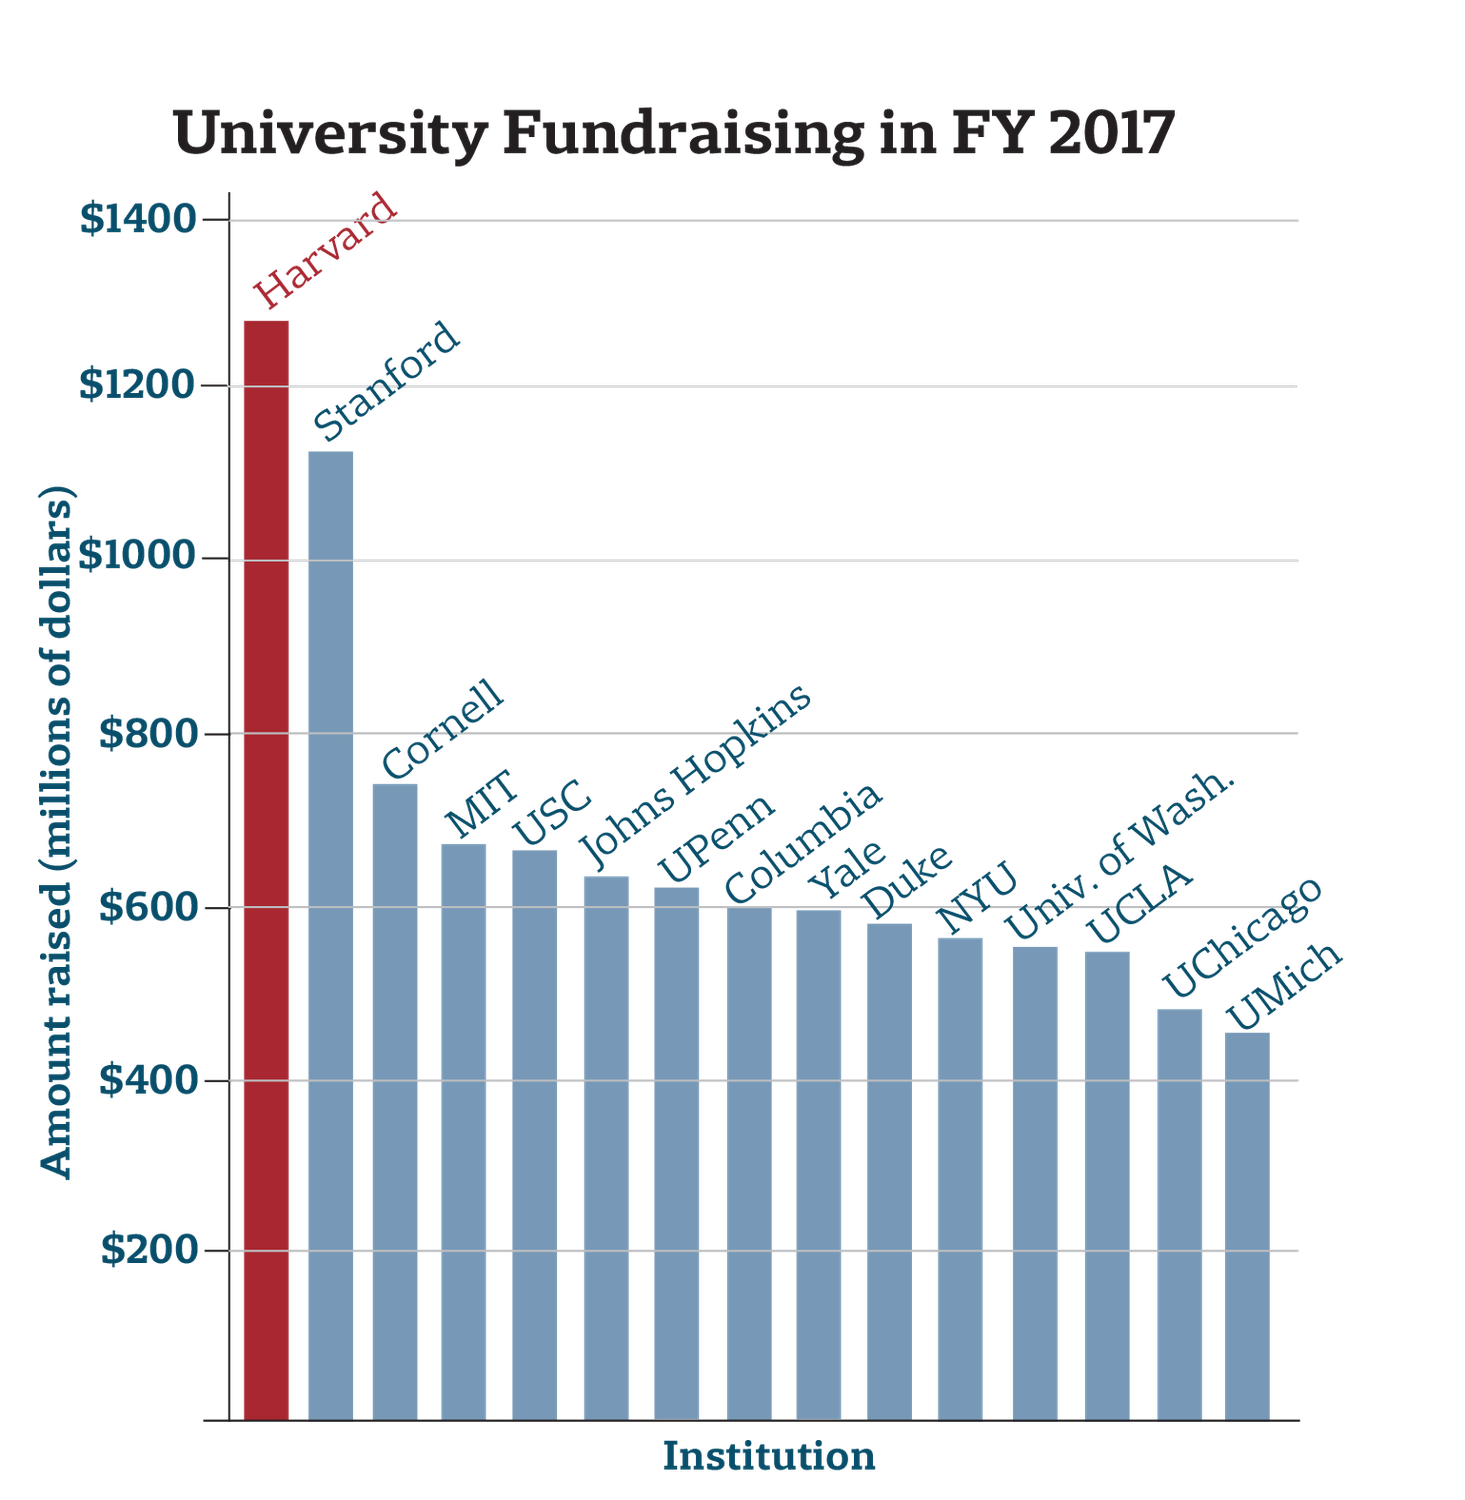 University Fundraising in FY 2017